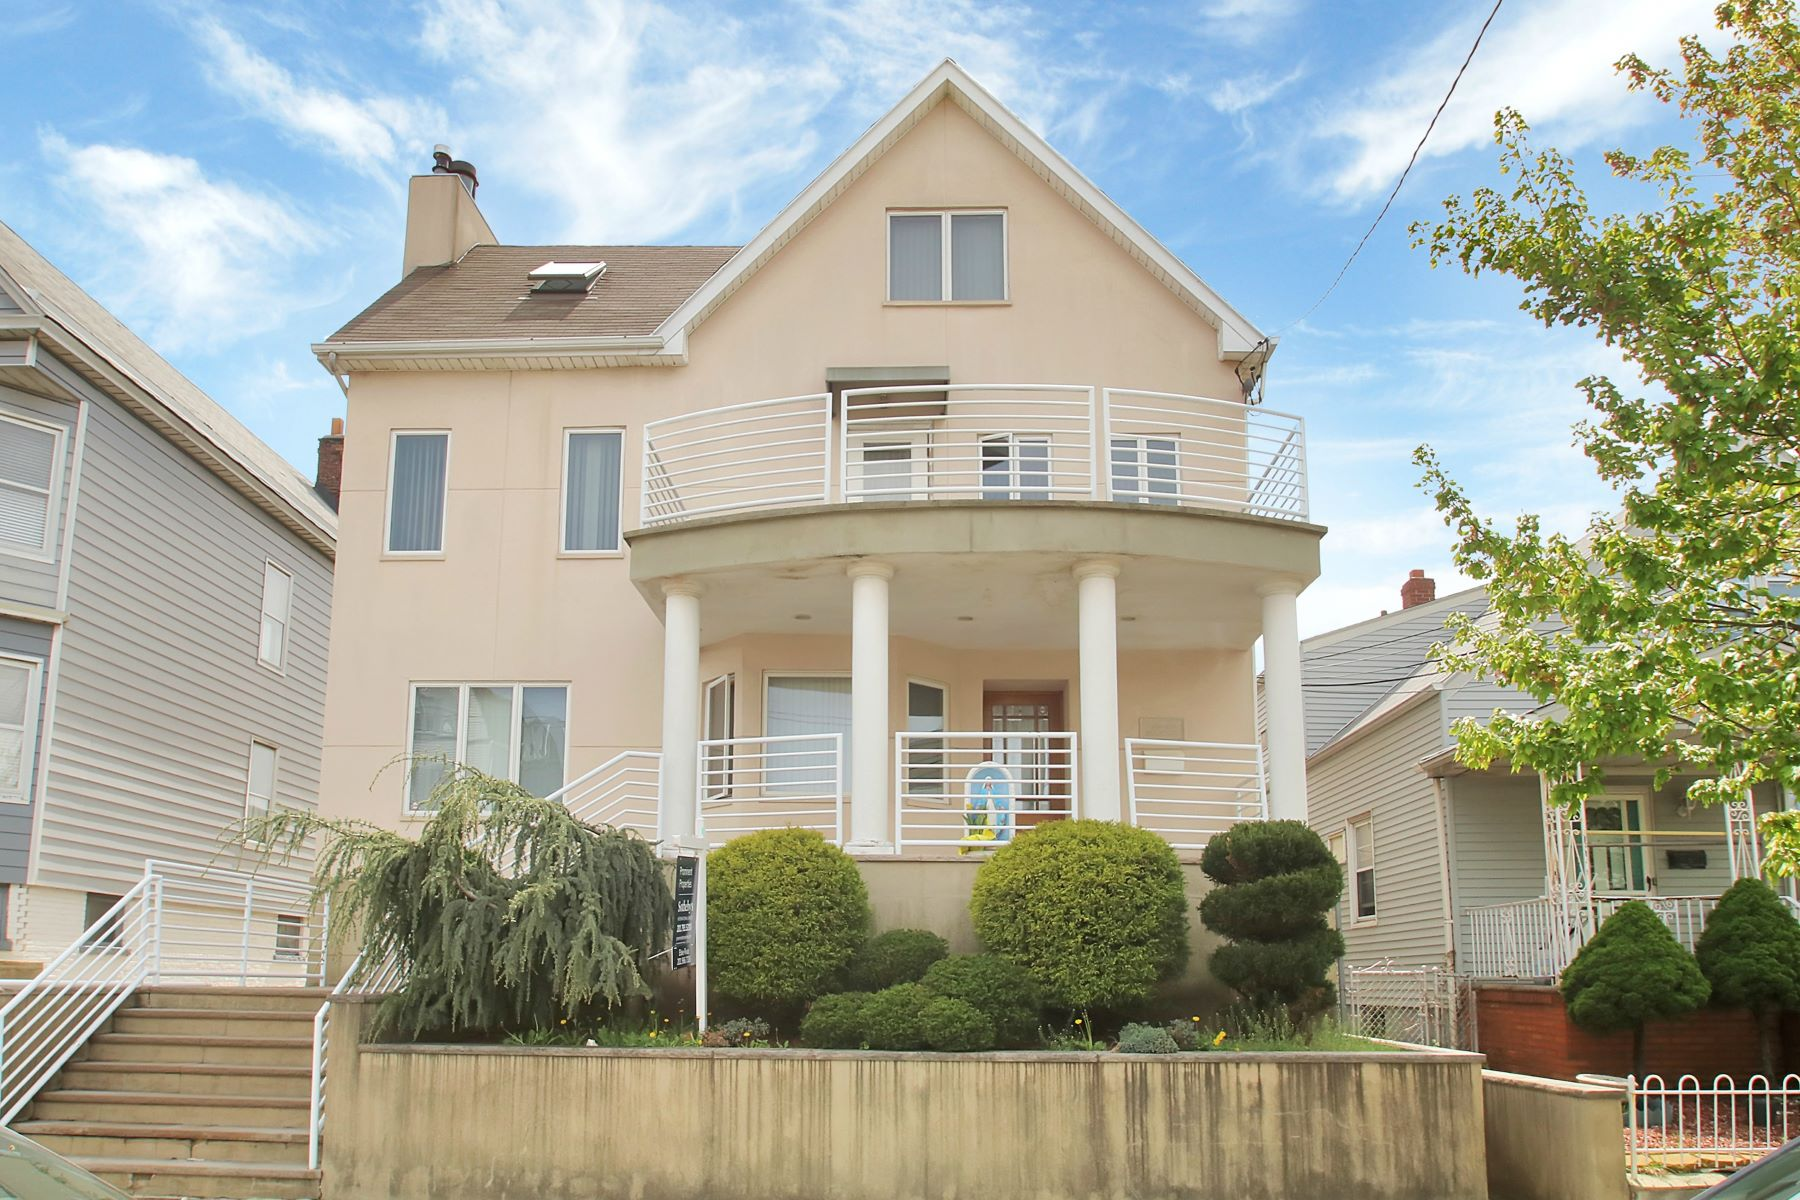 Maison multifamiliale pour l Vente à Exceptional one of a kind colonial Home 140 West 25th Street Bayonne, New Jersey 07002 États-Unis